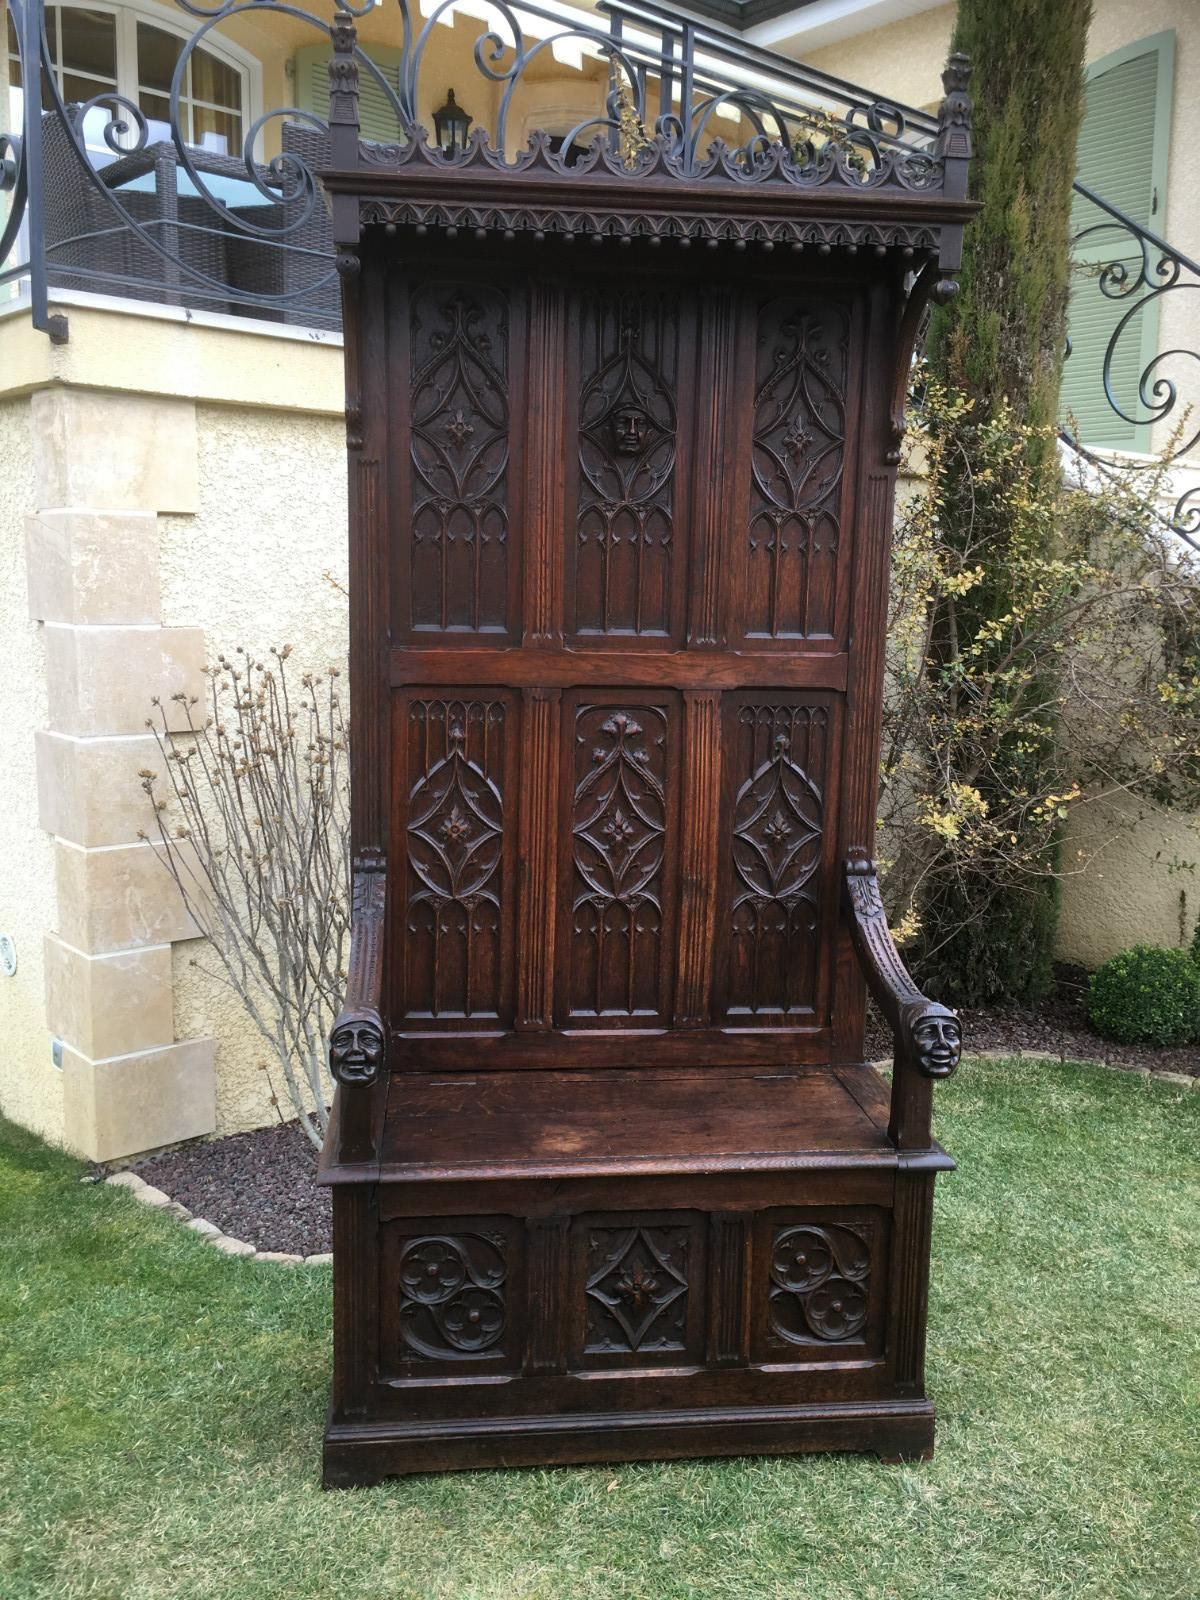 Banc Coffre Cathedre En Chene Style Gothique Sieges Mobilier Fabrice Heitzmann Gothic Chair Antique Furniture Medieval Gothic